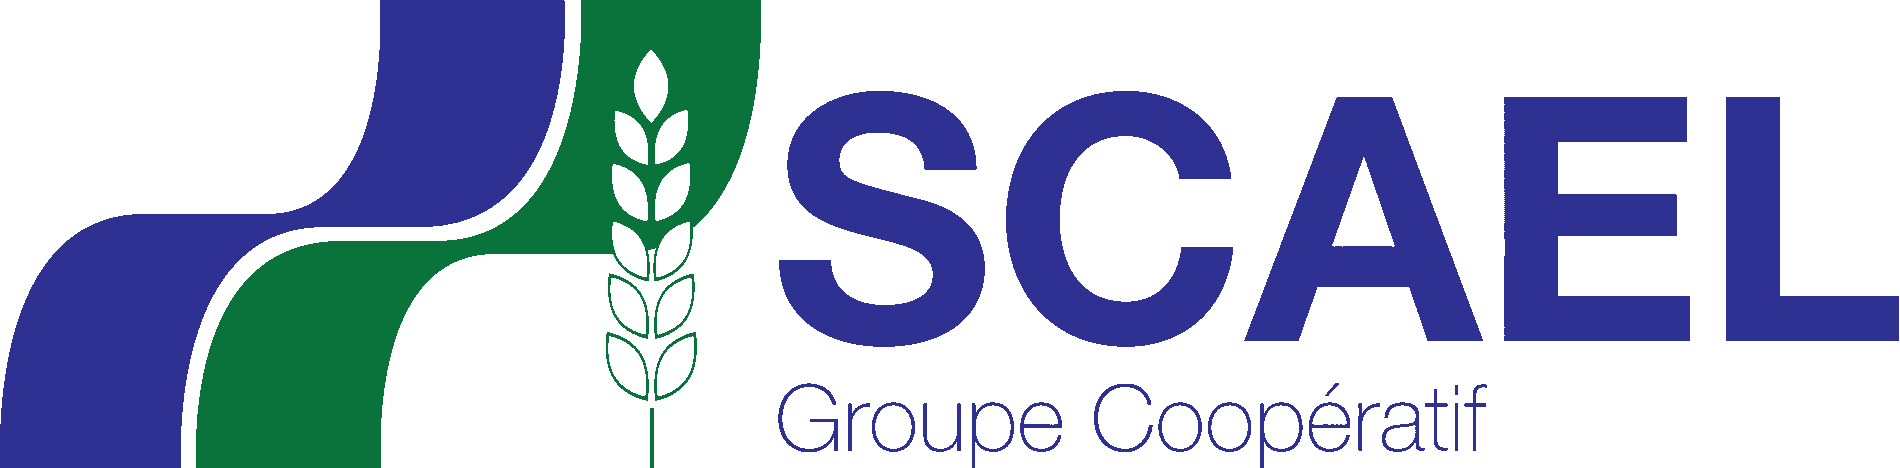 MG Consultants Référence - Scael